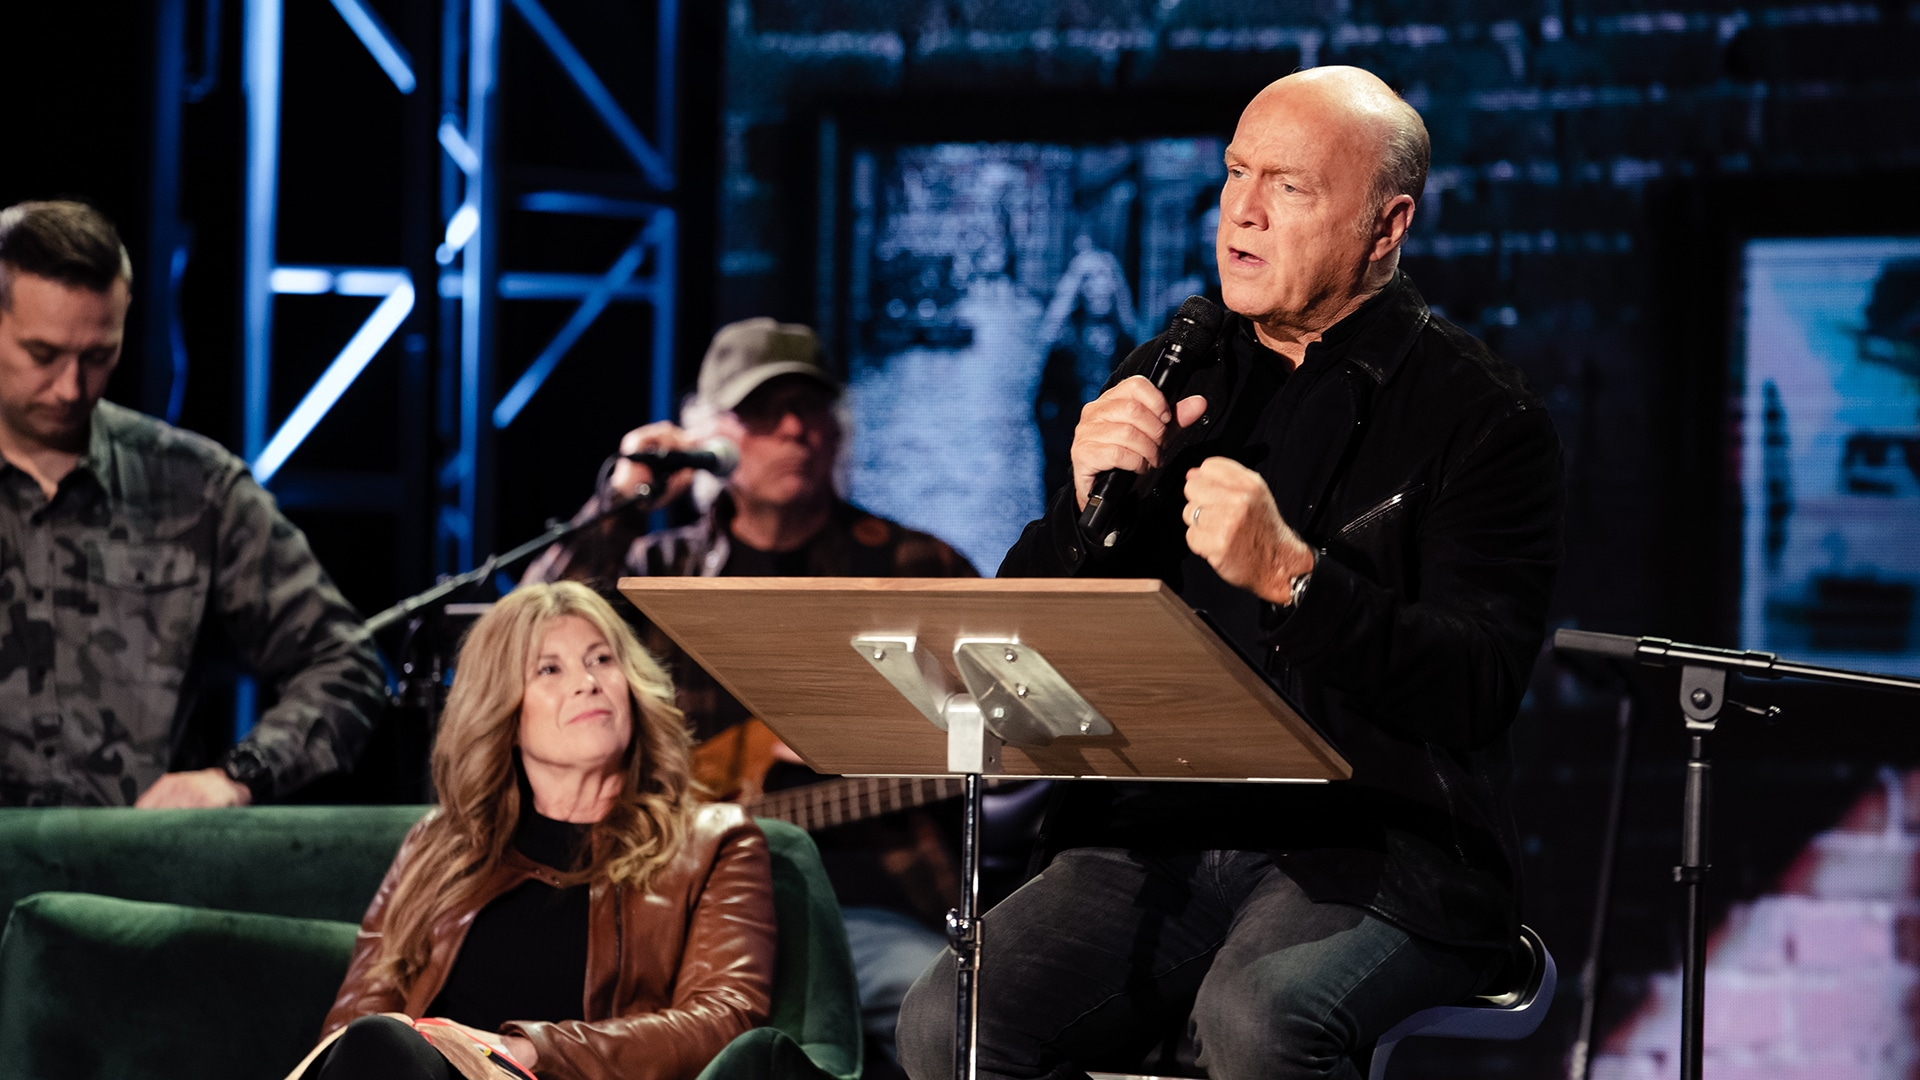 Free Bible from Pastor Greg Laurie